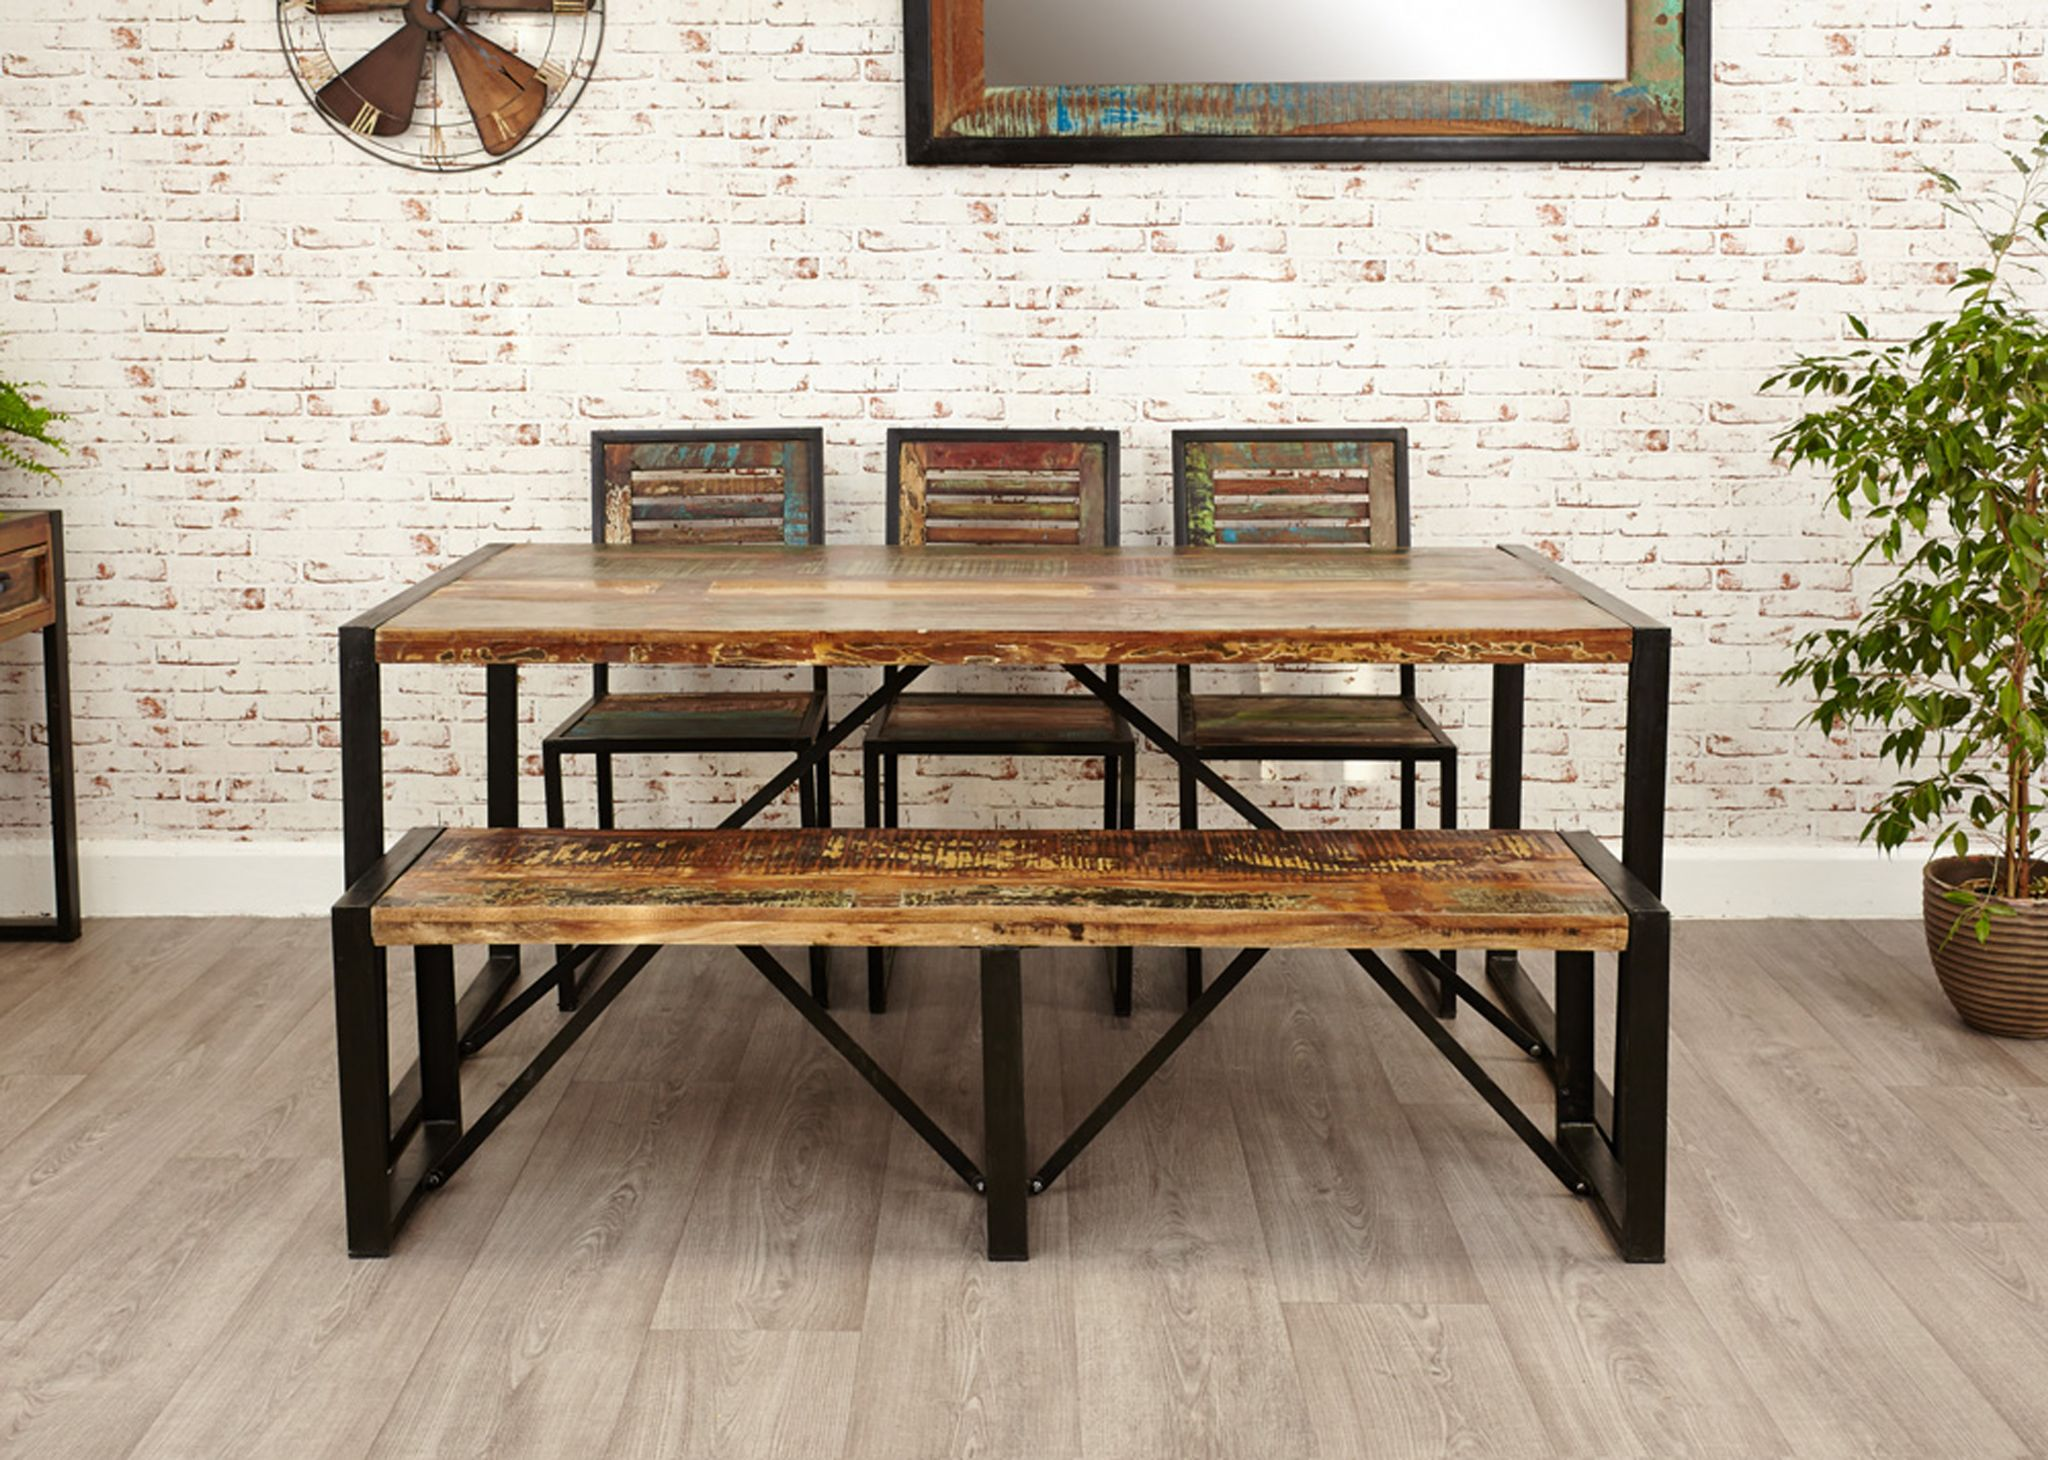 Urban Chic Reclaimed Wood and Metal Large Dining Table, Chair and ...